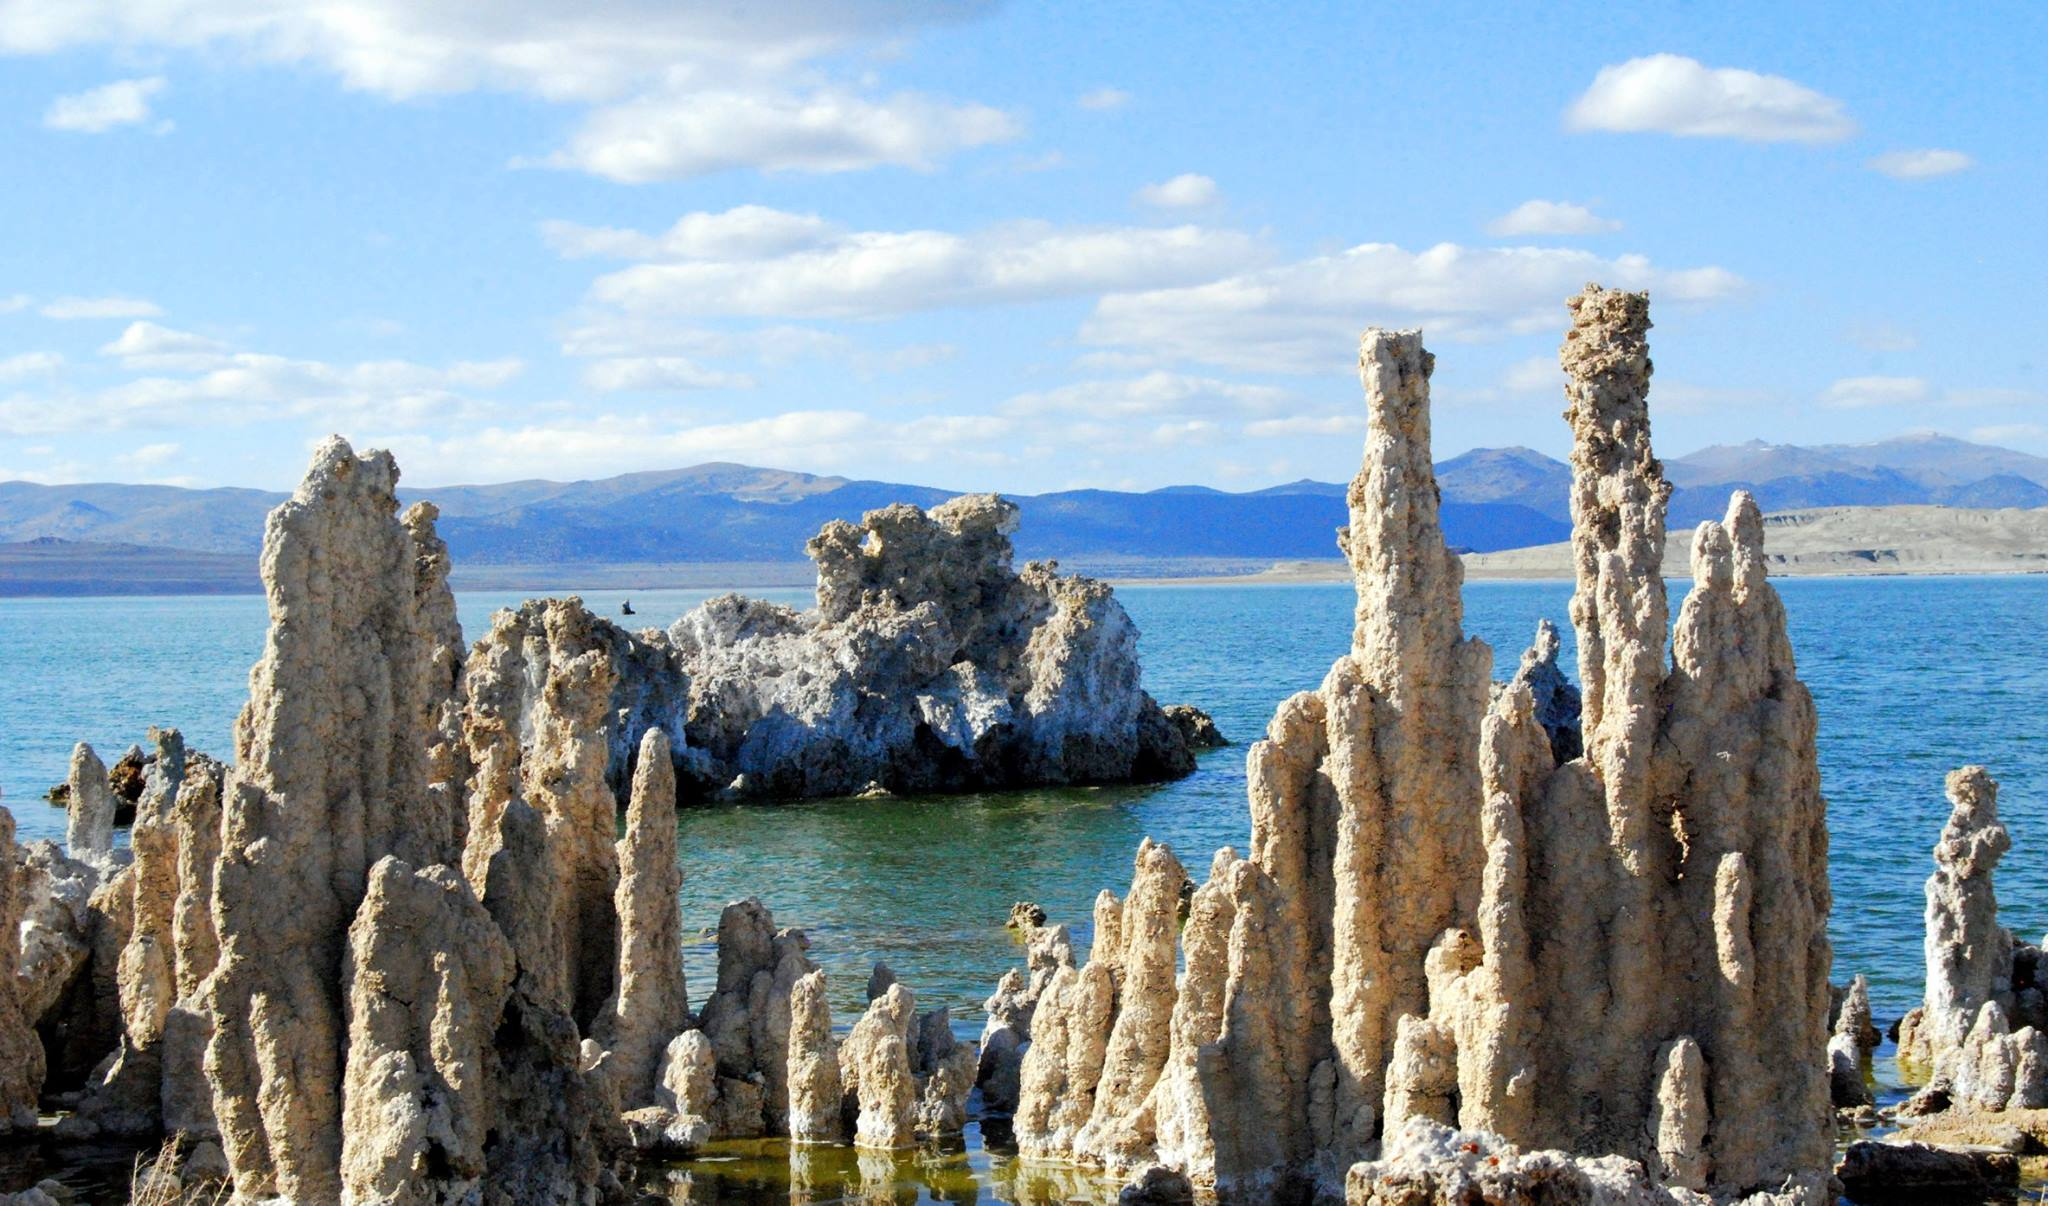 """Mono Lake, California, with salt pillars known as """"tufas"""" visible. JPL scientists tested new methods for detecting chemical signatures of life in the salty waters here, believing them to be analogs for water on Mars or ocean worlds like Europa. – Image Credits: Mono County Tourism"""